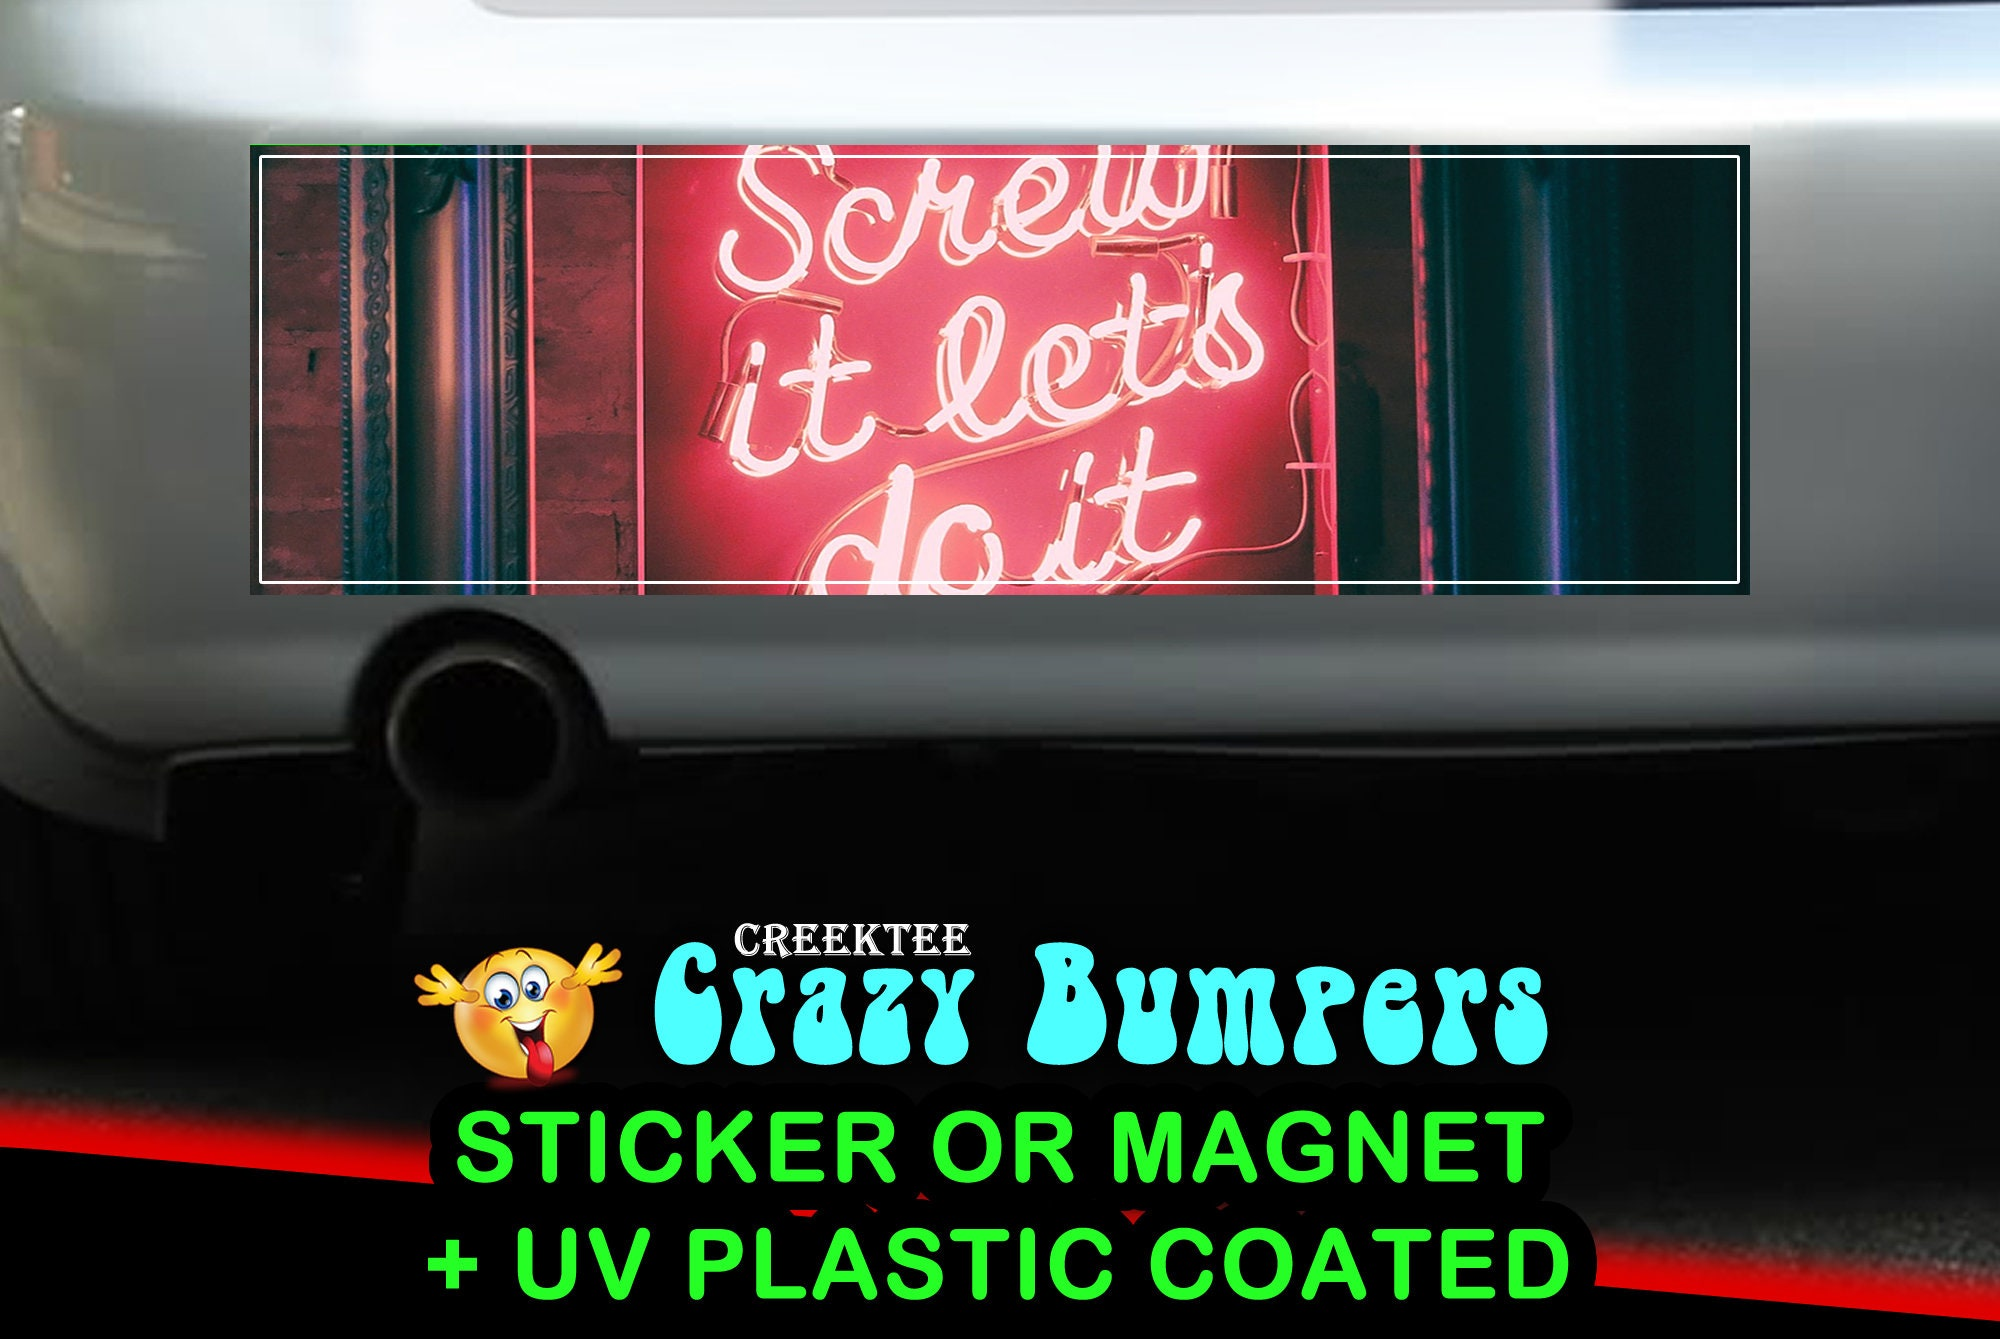 CAD$9.74 - Neon Screw It Lets Do It 10 x 3 Bumper Sticker or Magnet - Custom changes and orders welcomed!